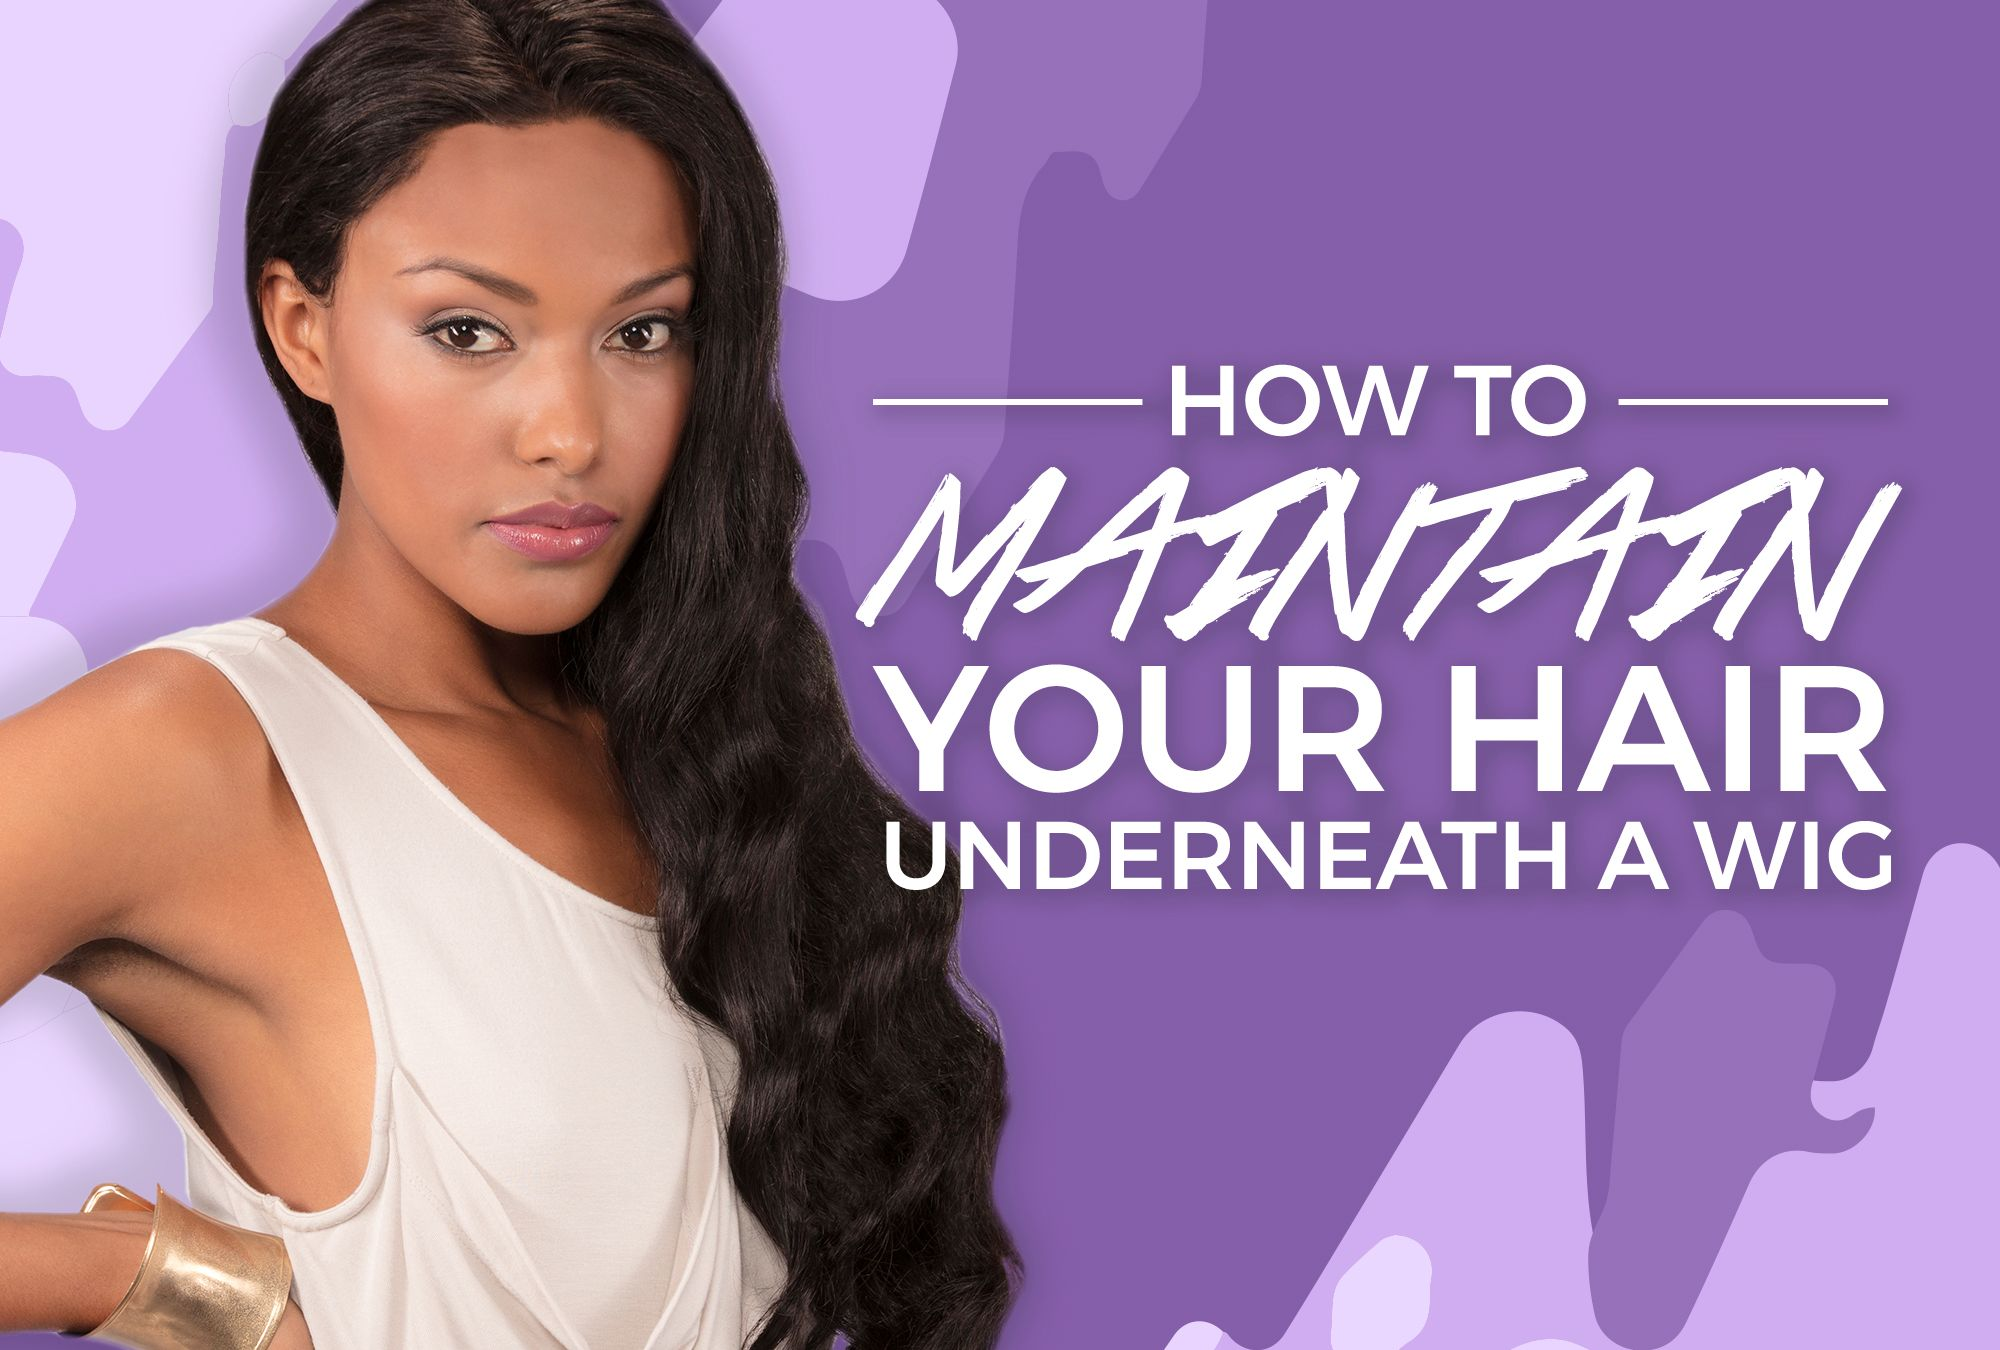 How To Maintain Your Hair Underneath A Wig